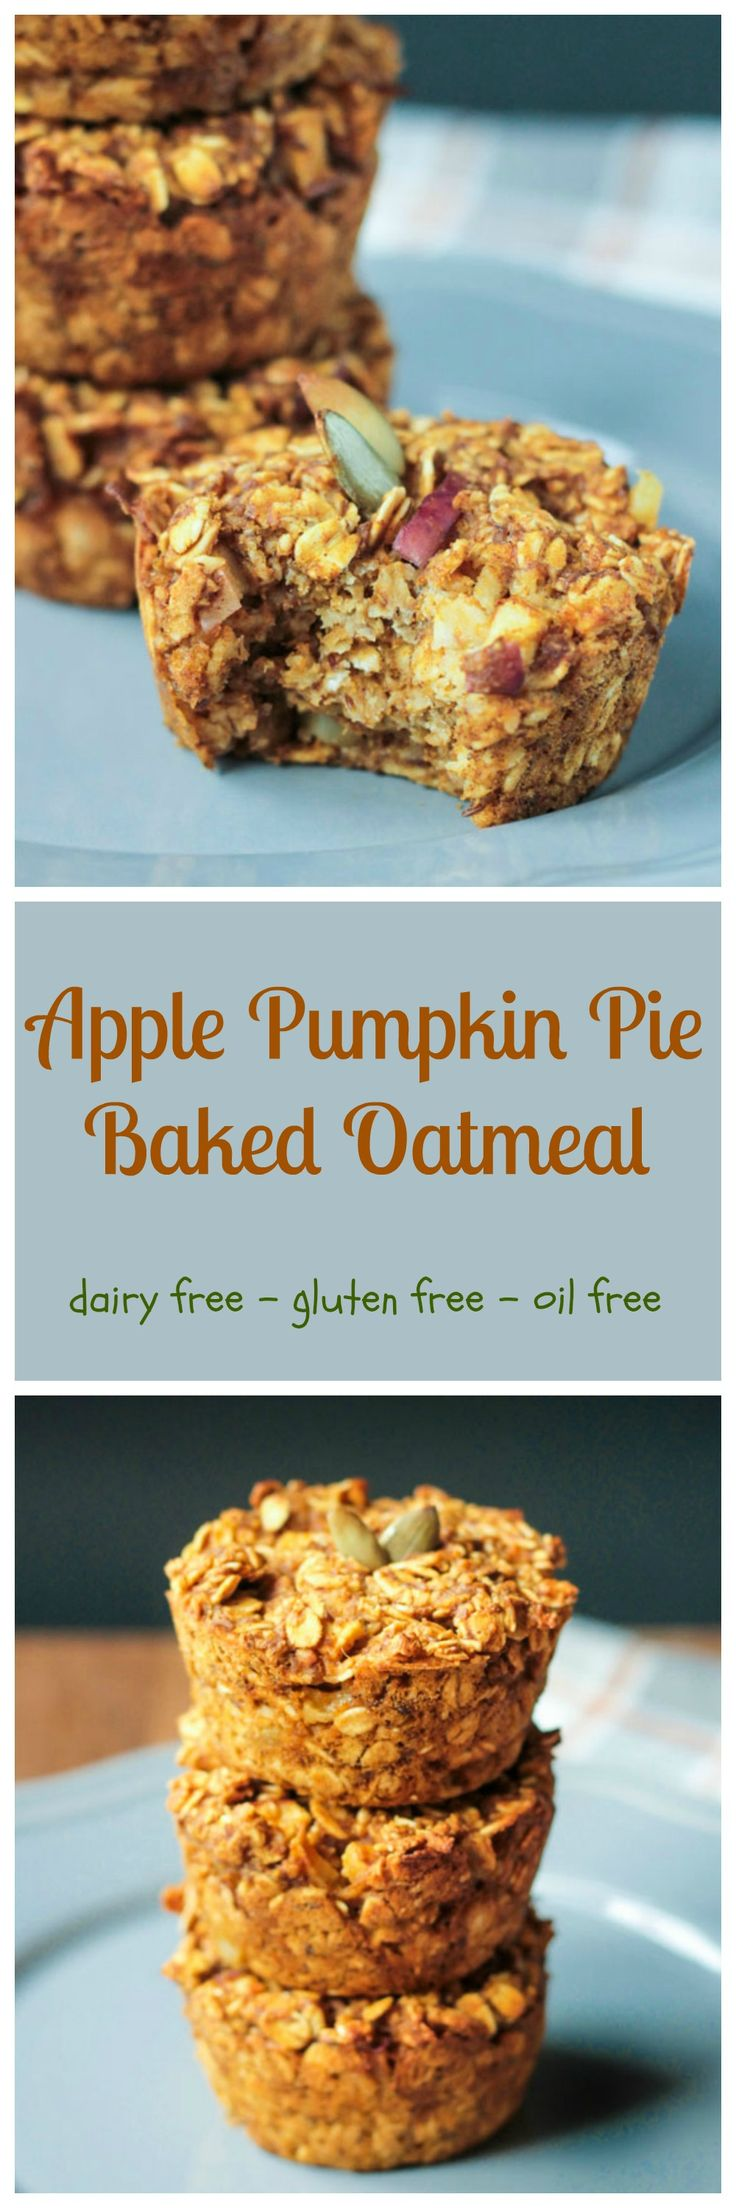 #Healthy #Apple #Pumpkin Pie #BakedOatmeal Bites - the perfect #quickandeasy fall #breakfast or grab-n-go #snack. #vegan #dairyfree #glutenfree #oilfree #makeahead #kidfriendly